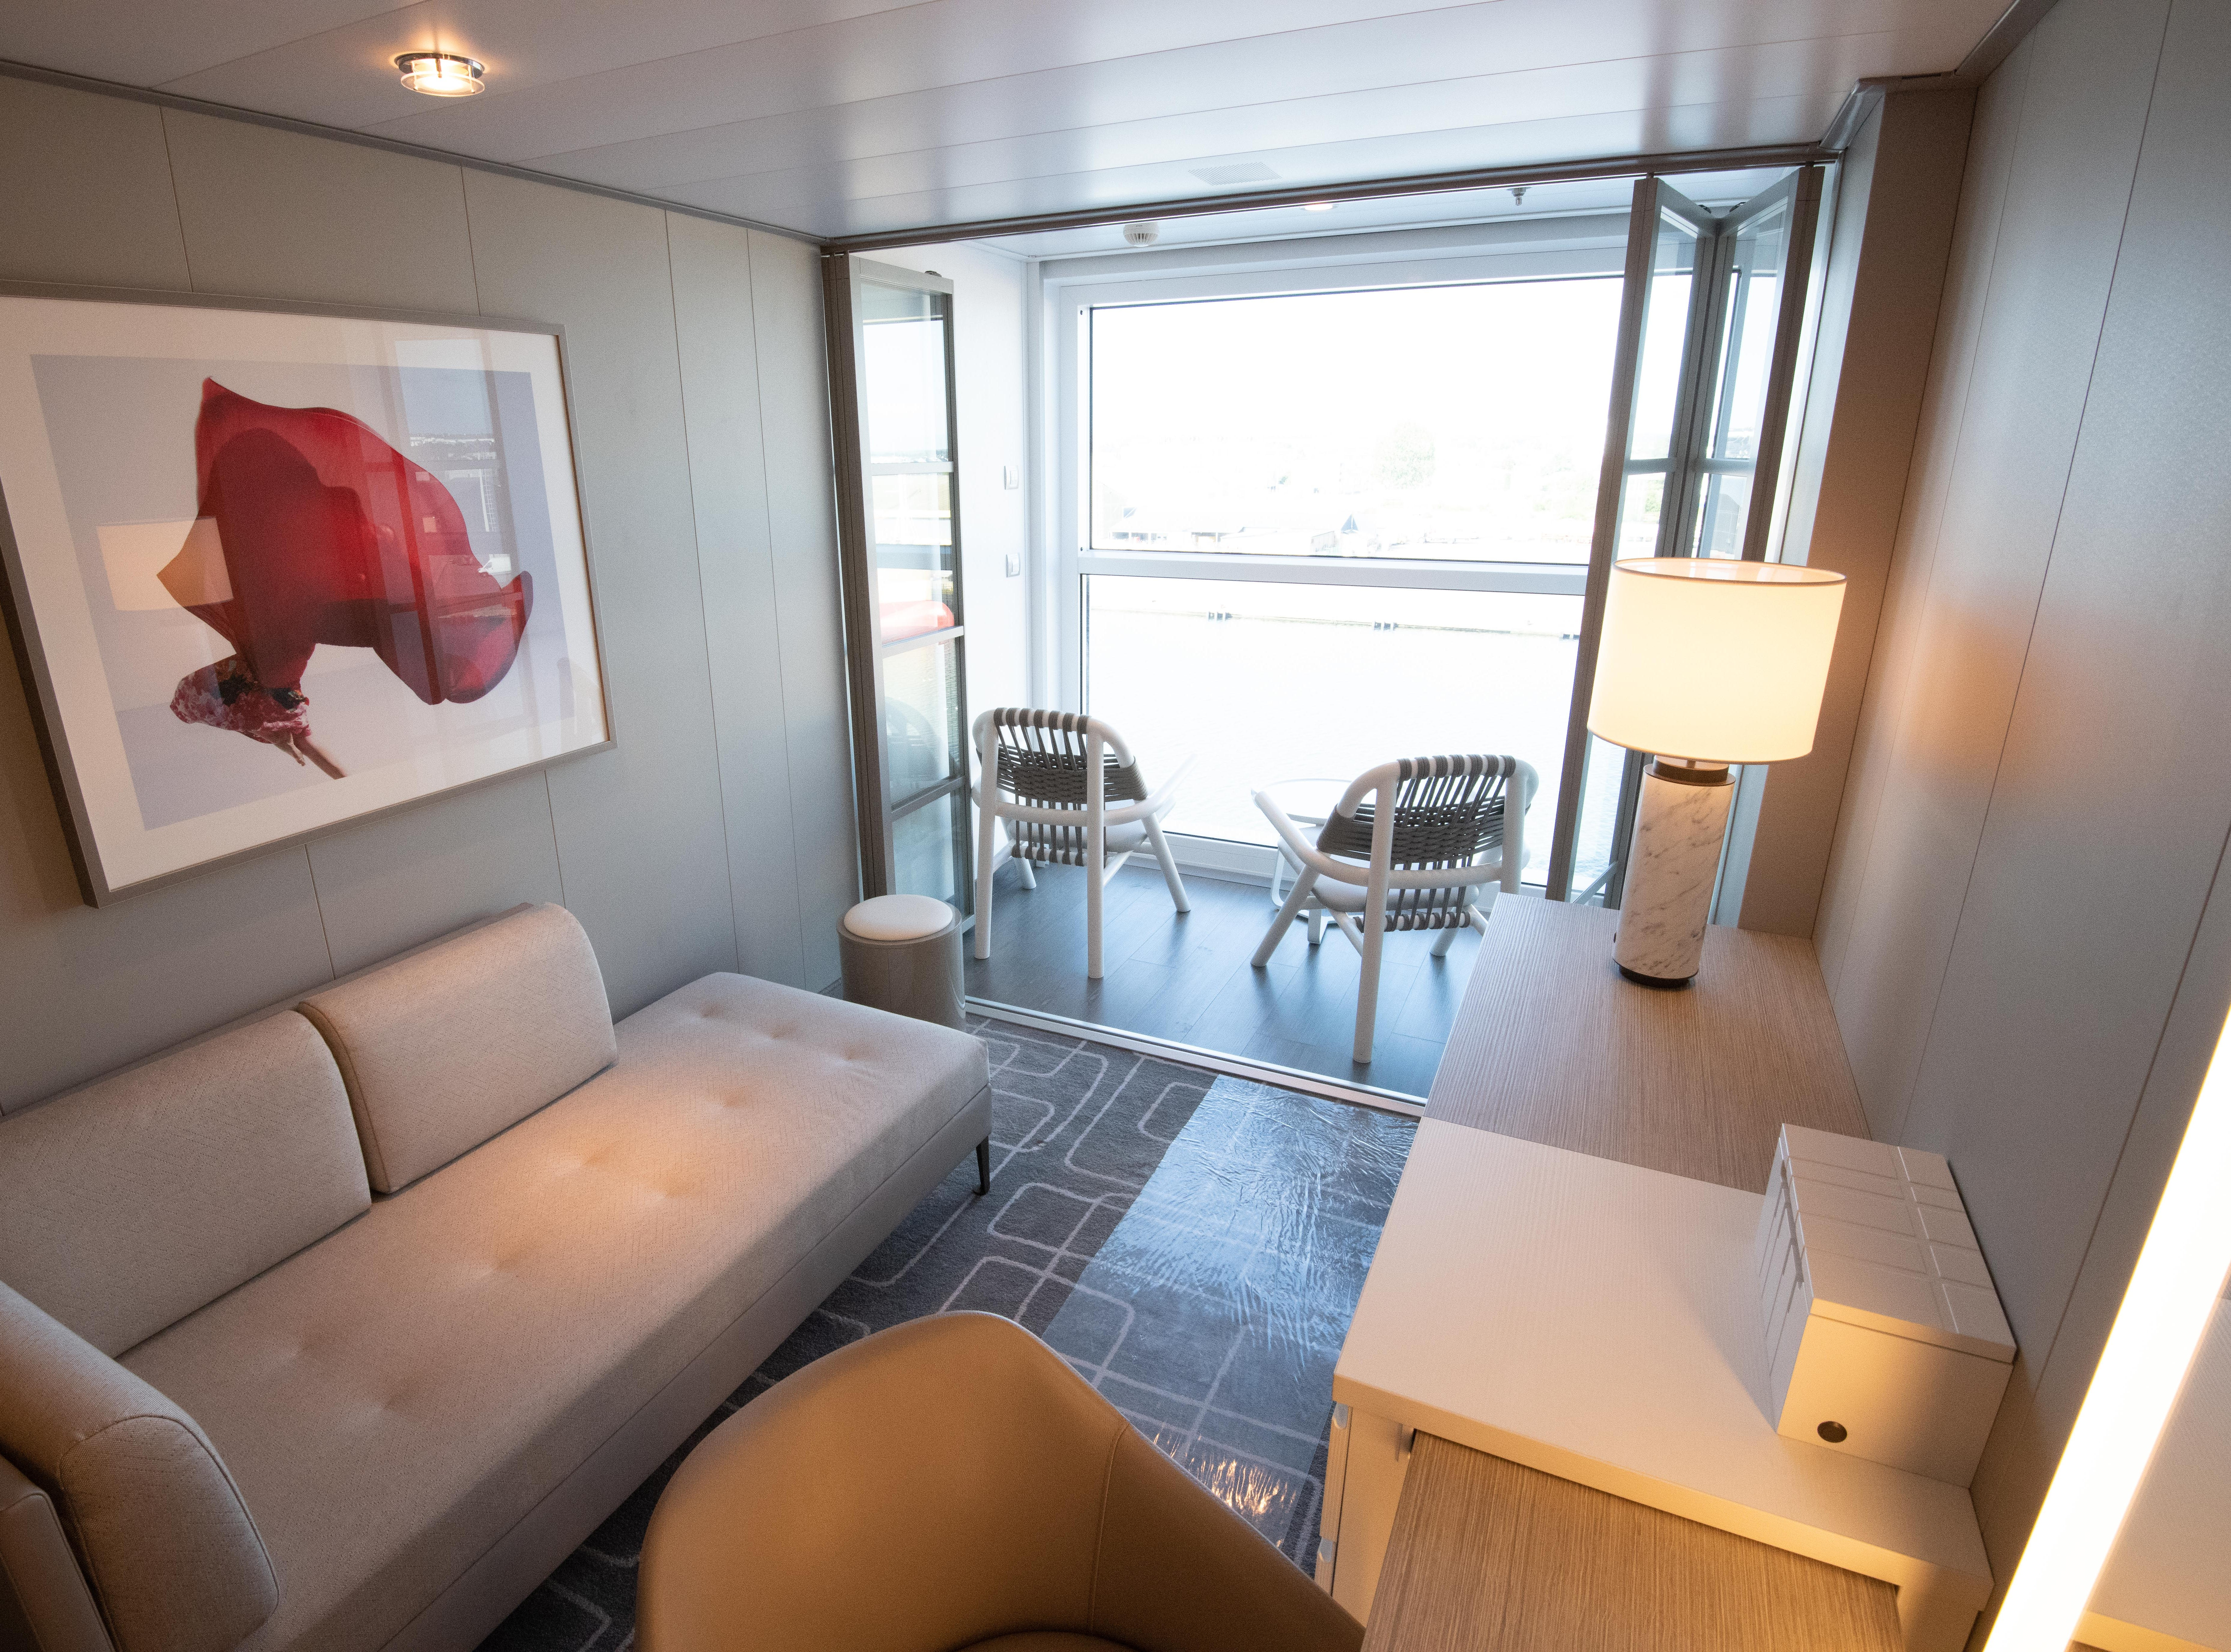 Billed as a first for an ocean cruise ship, Infinite Veranda cabins will have balconies that are incorporated into the main cabin area.